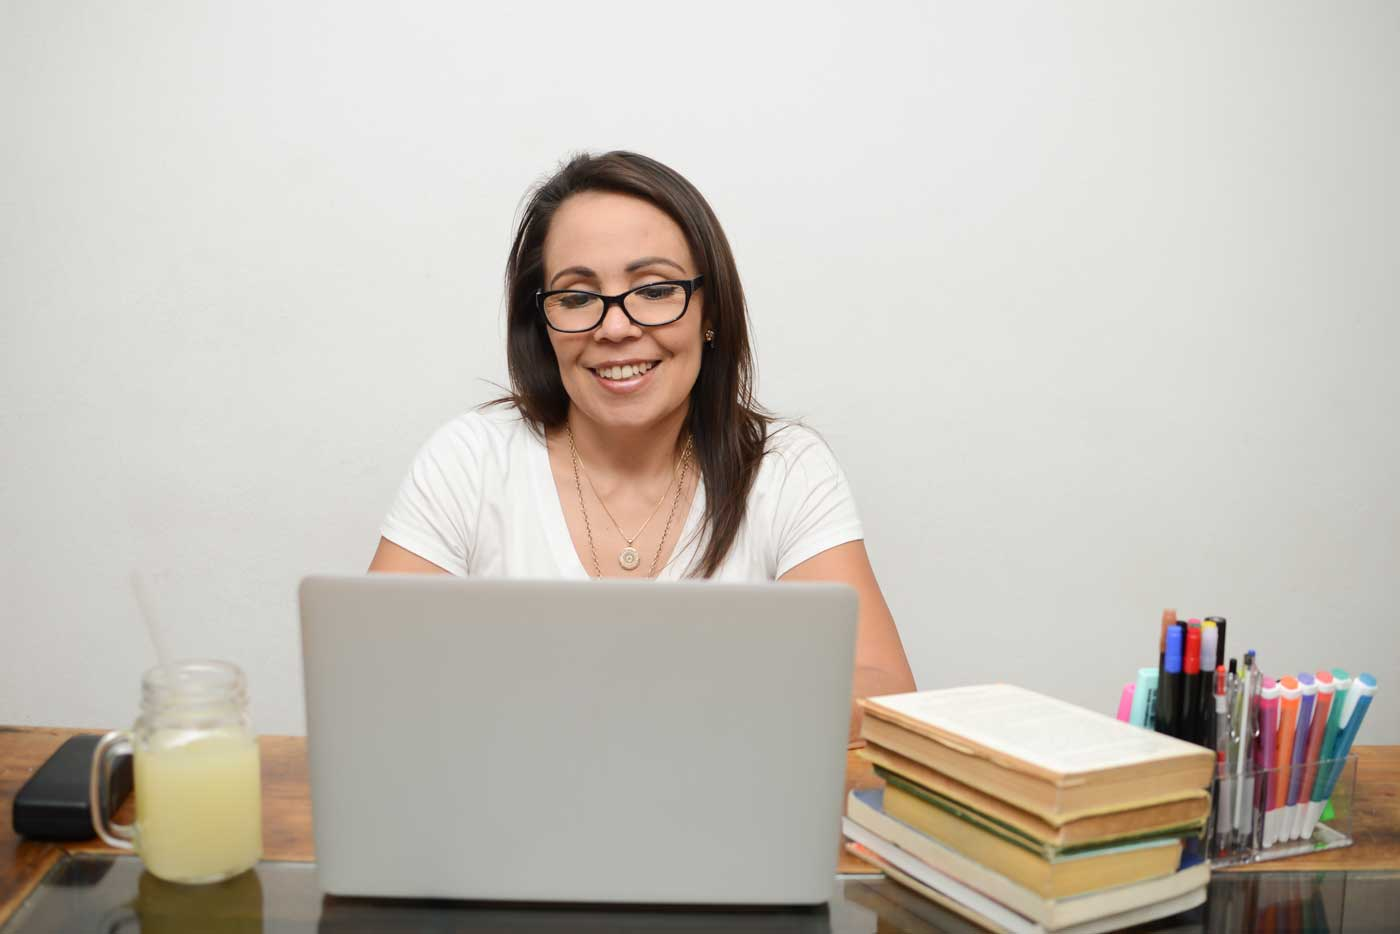 Woman creating a marketing email on her laptop.